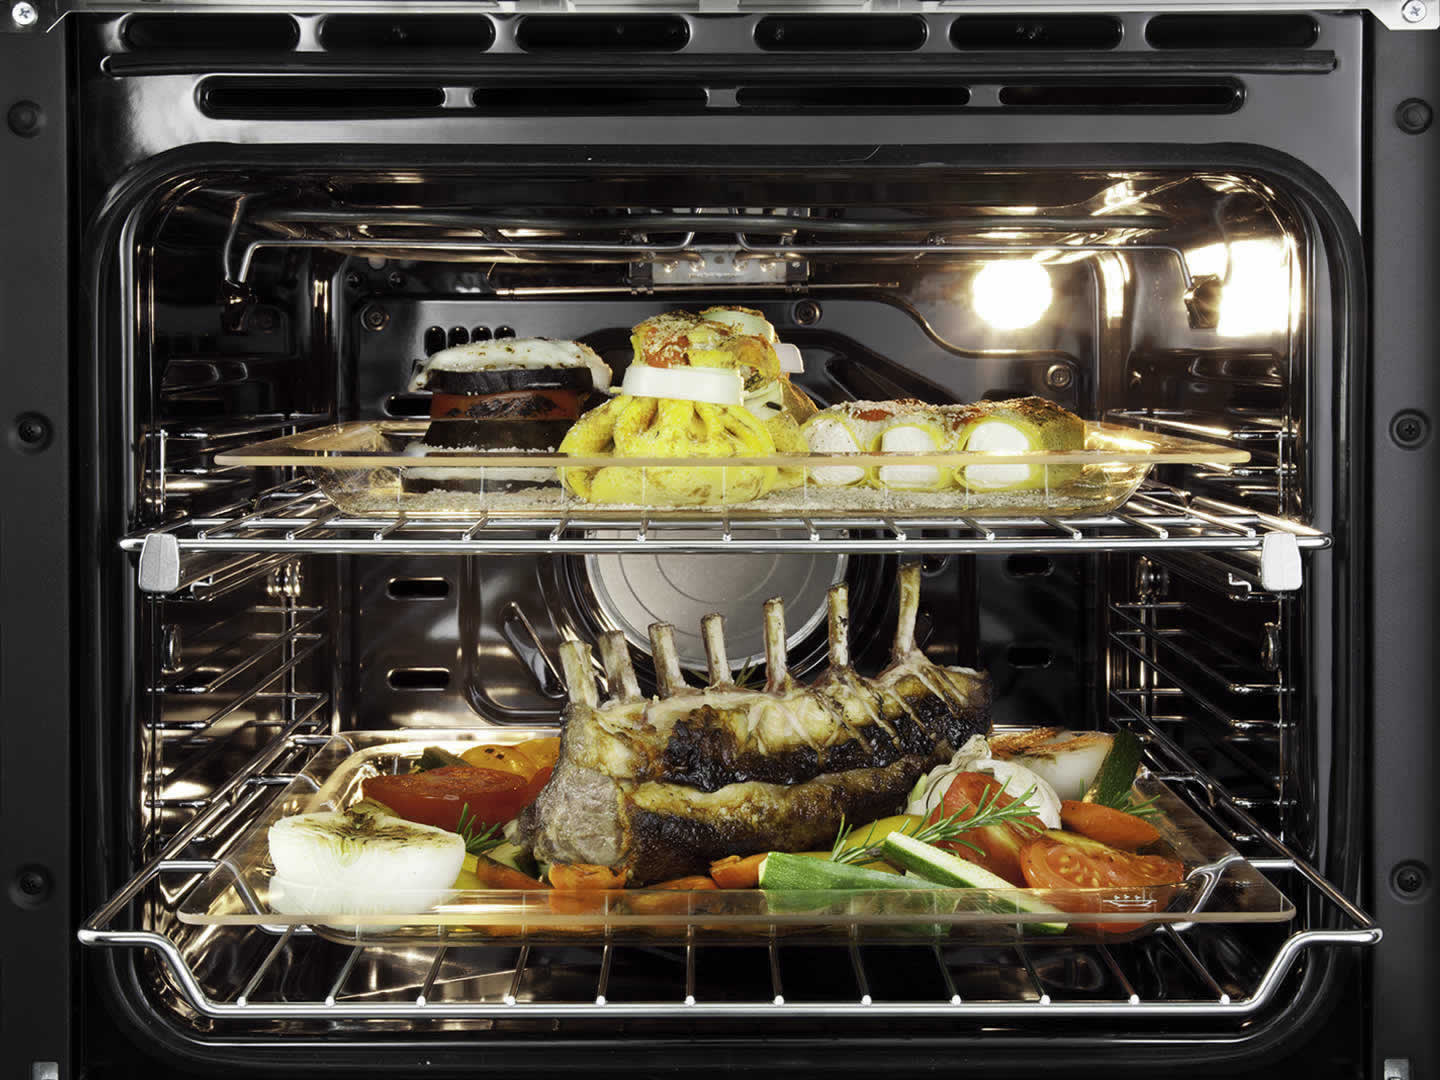 60cm 7 Function Pyrolytic Built-in Project Oven - DE607PSCP - Oven Cavity